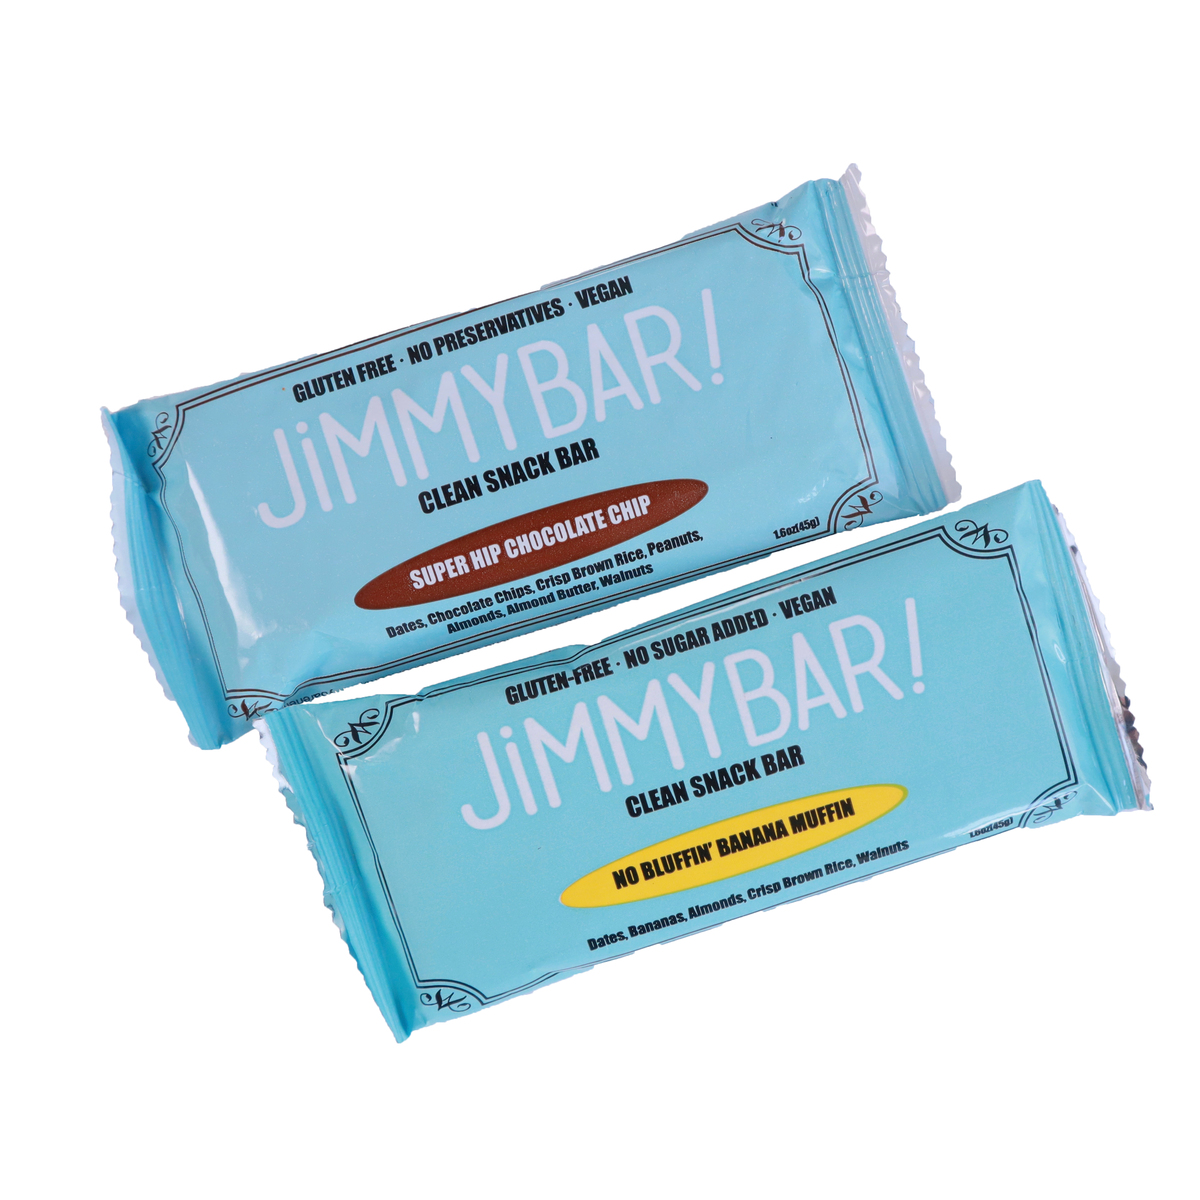 Gluten-Free Snack Bar Assorted Flavours, 45g x 12 Bars Pack